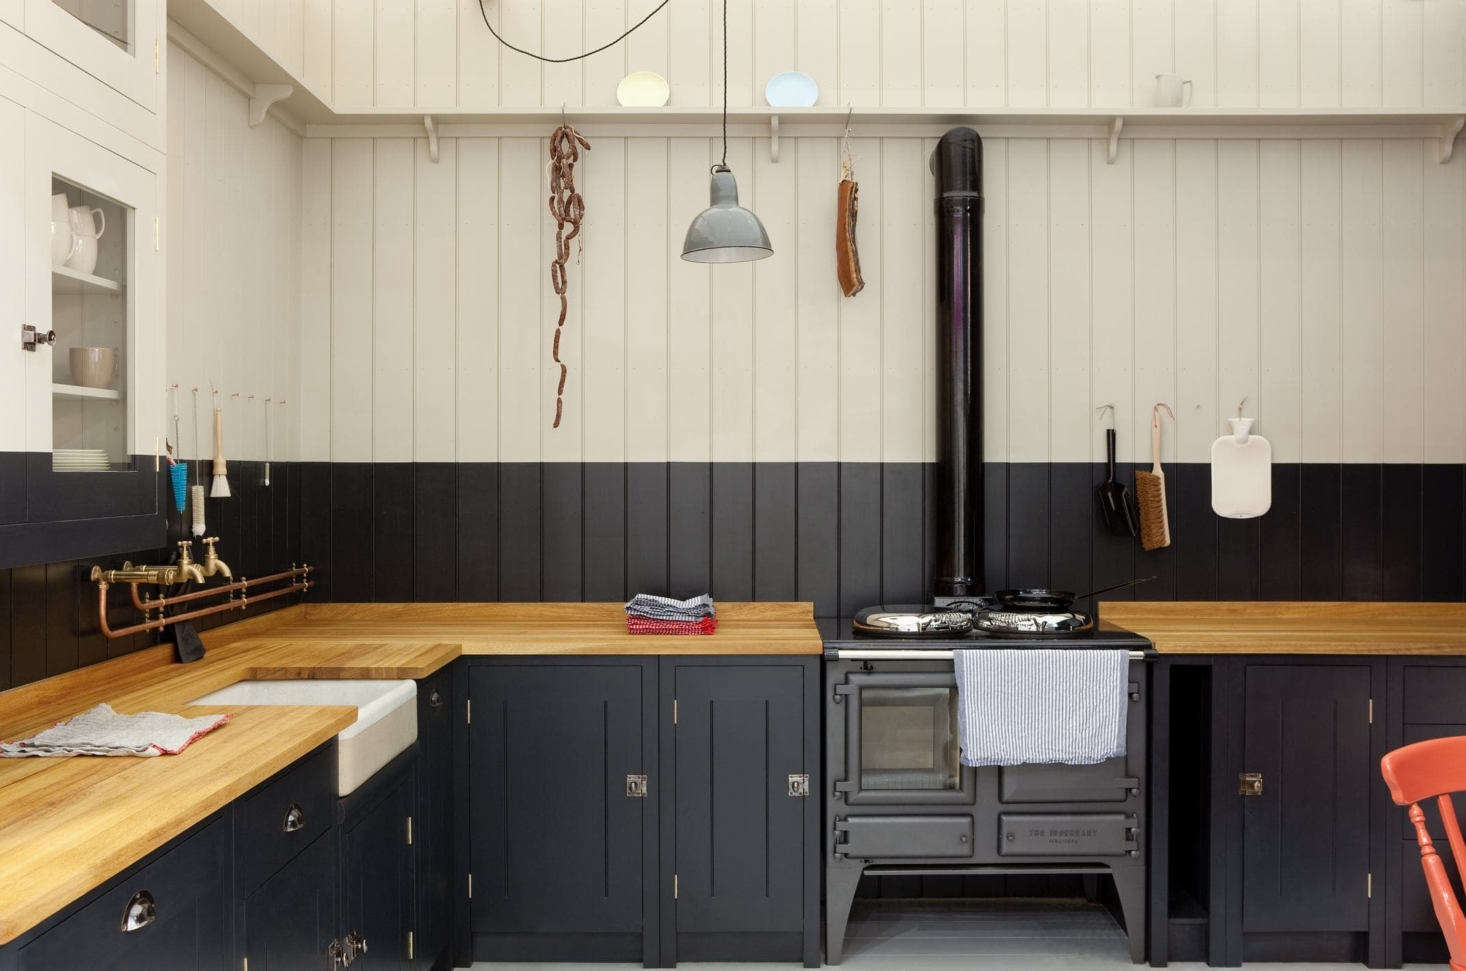 British Standard cupboards are available in Broken White eggshell finish, ready for the customer to paint in any color they wish. In this case, the color of the cabinets extends above the worktop, creating an unexpected and quirky visual datum.